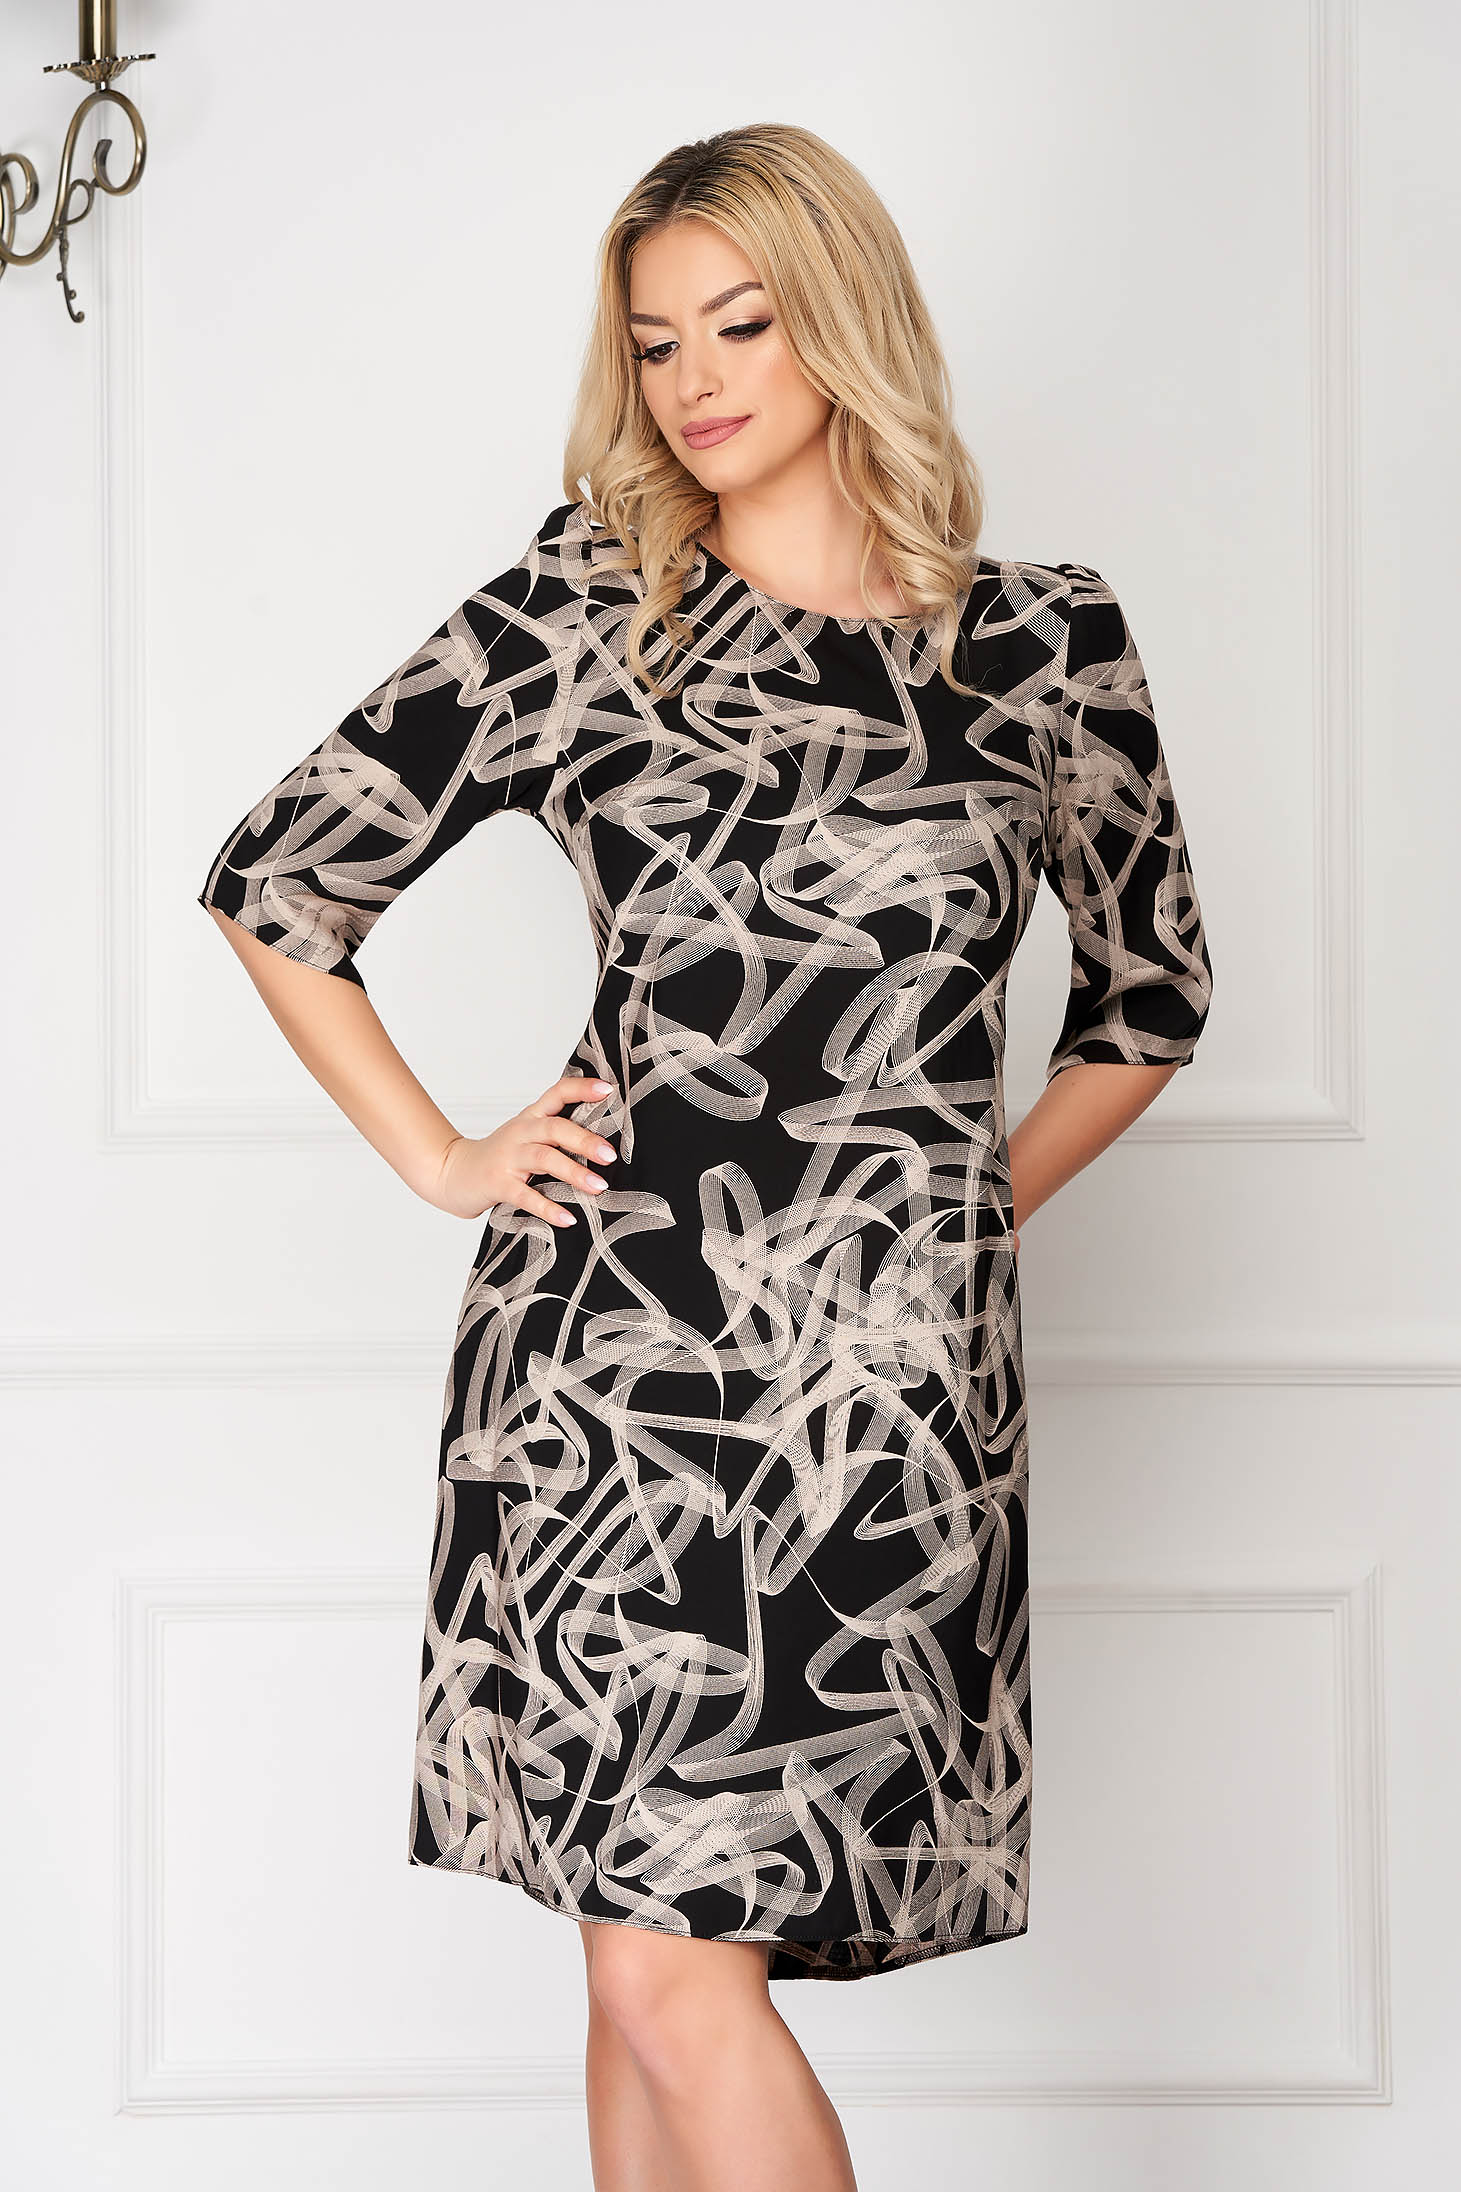 Black dress with graphic print with 3/4 sleeves office a-line short cut